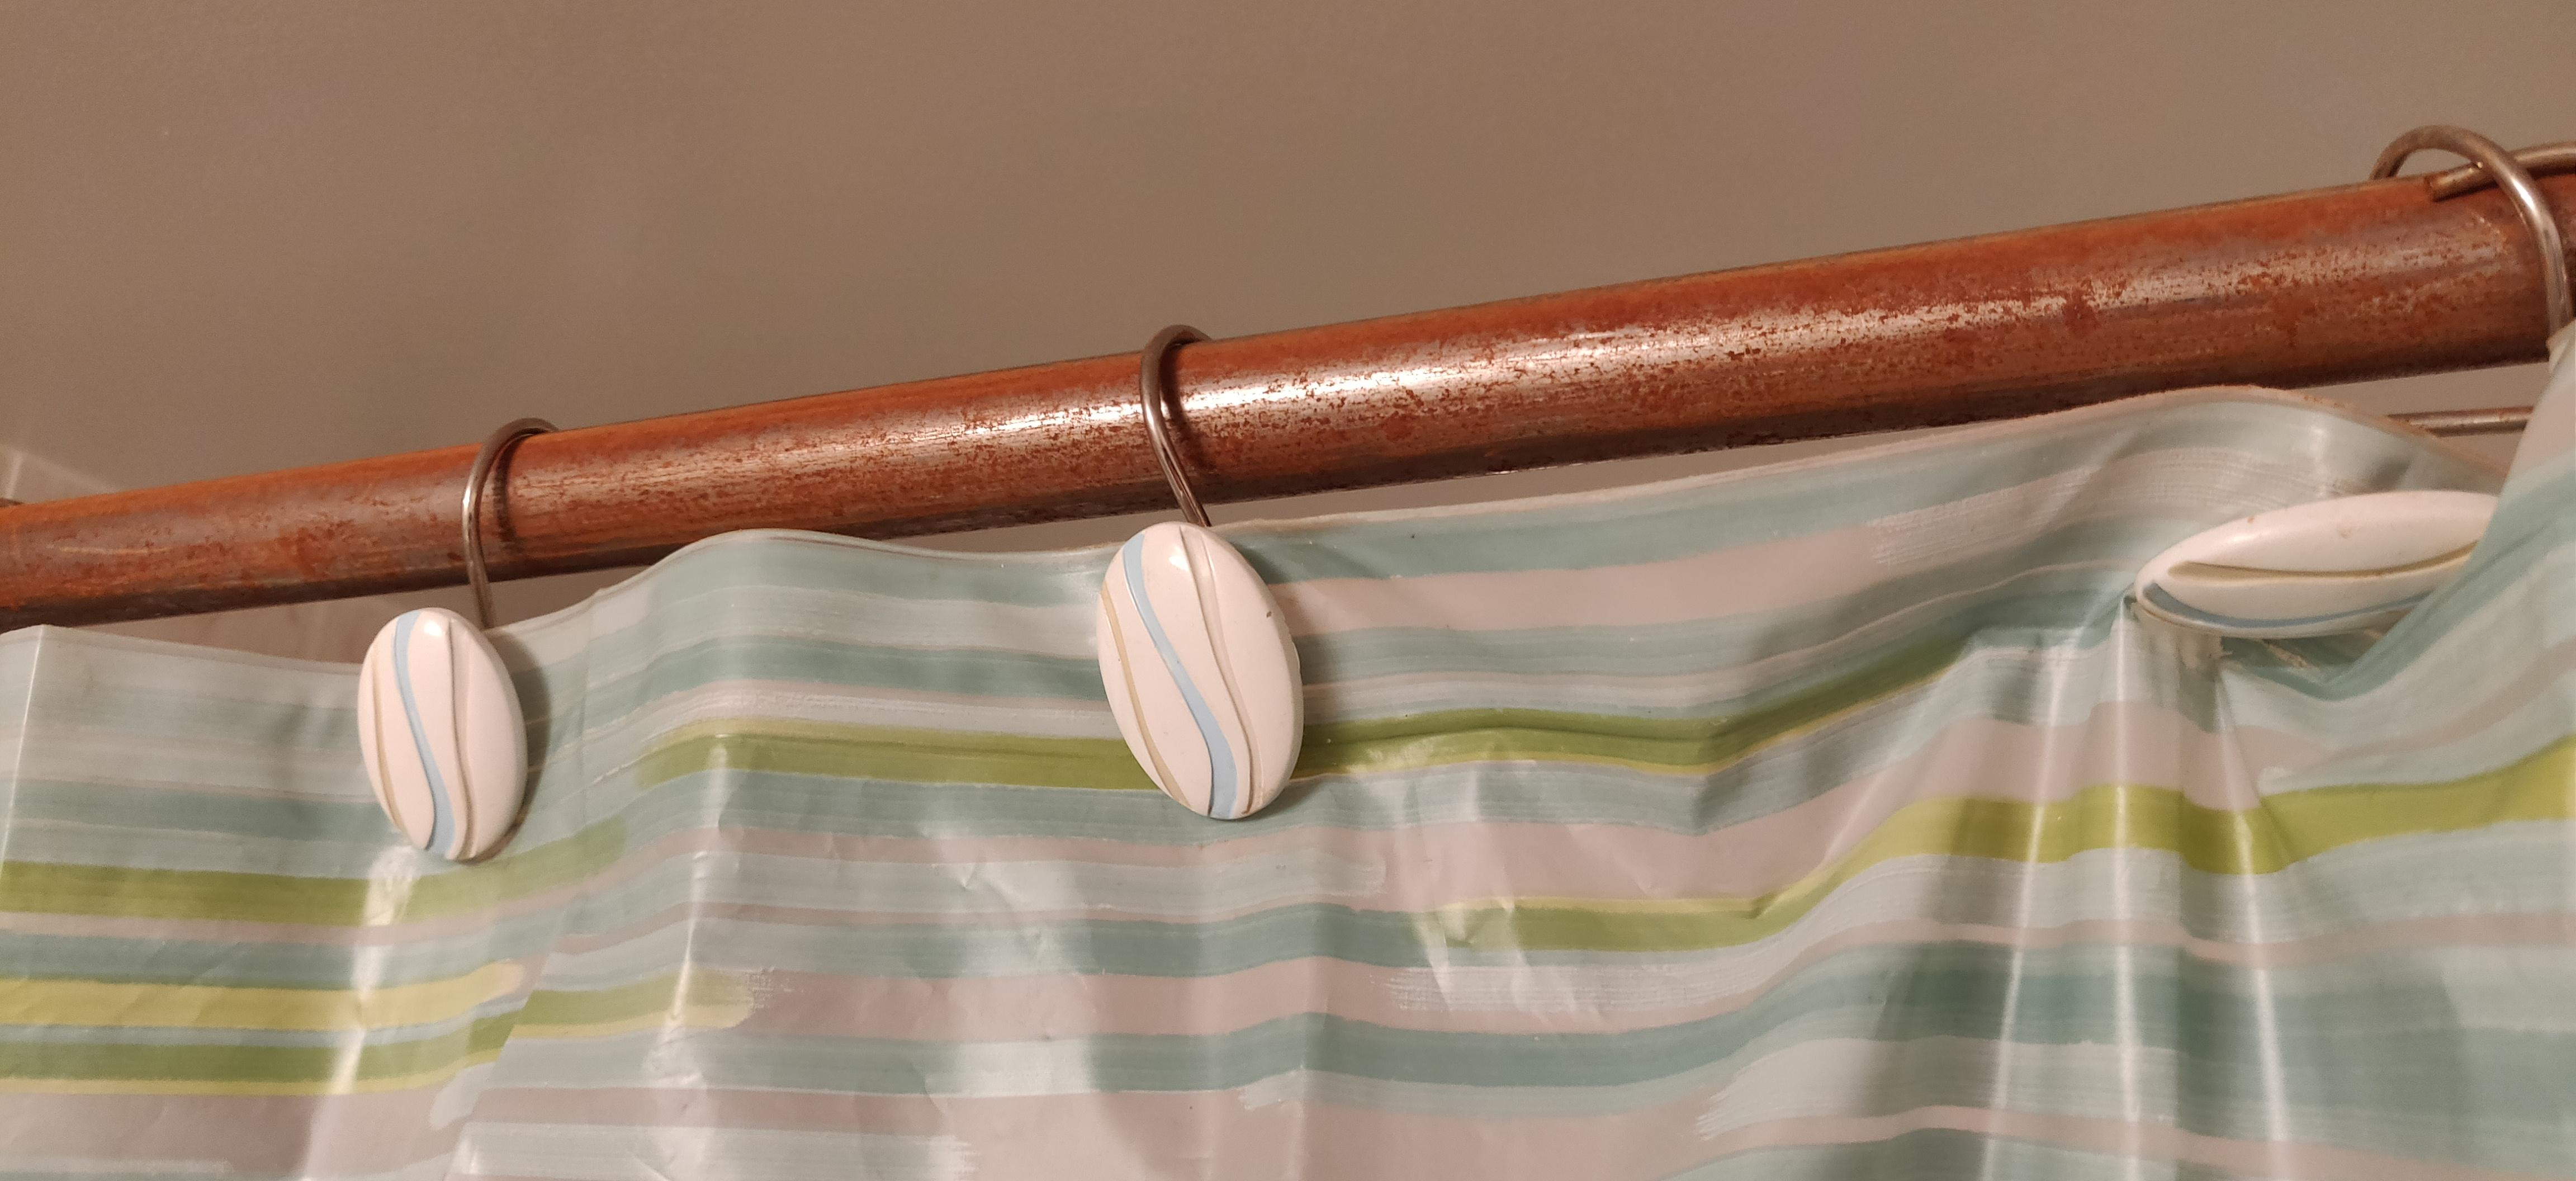 the shower curtain rod that can rust